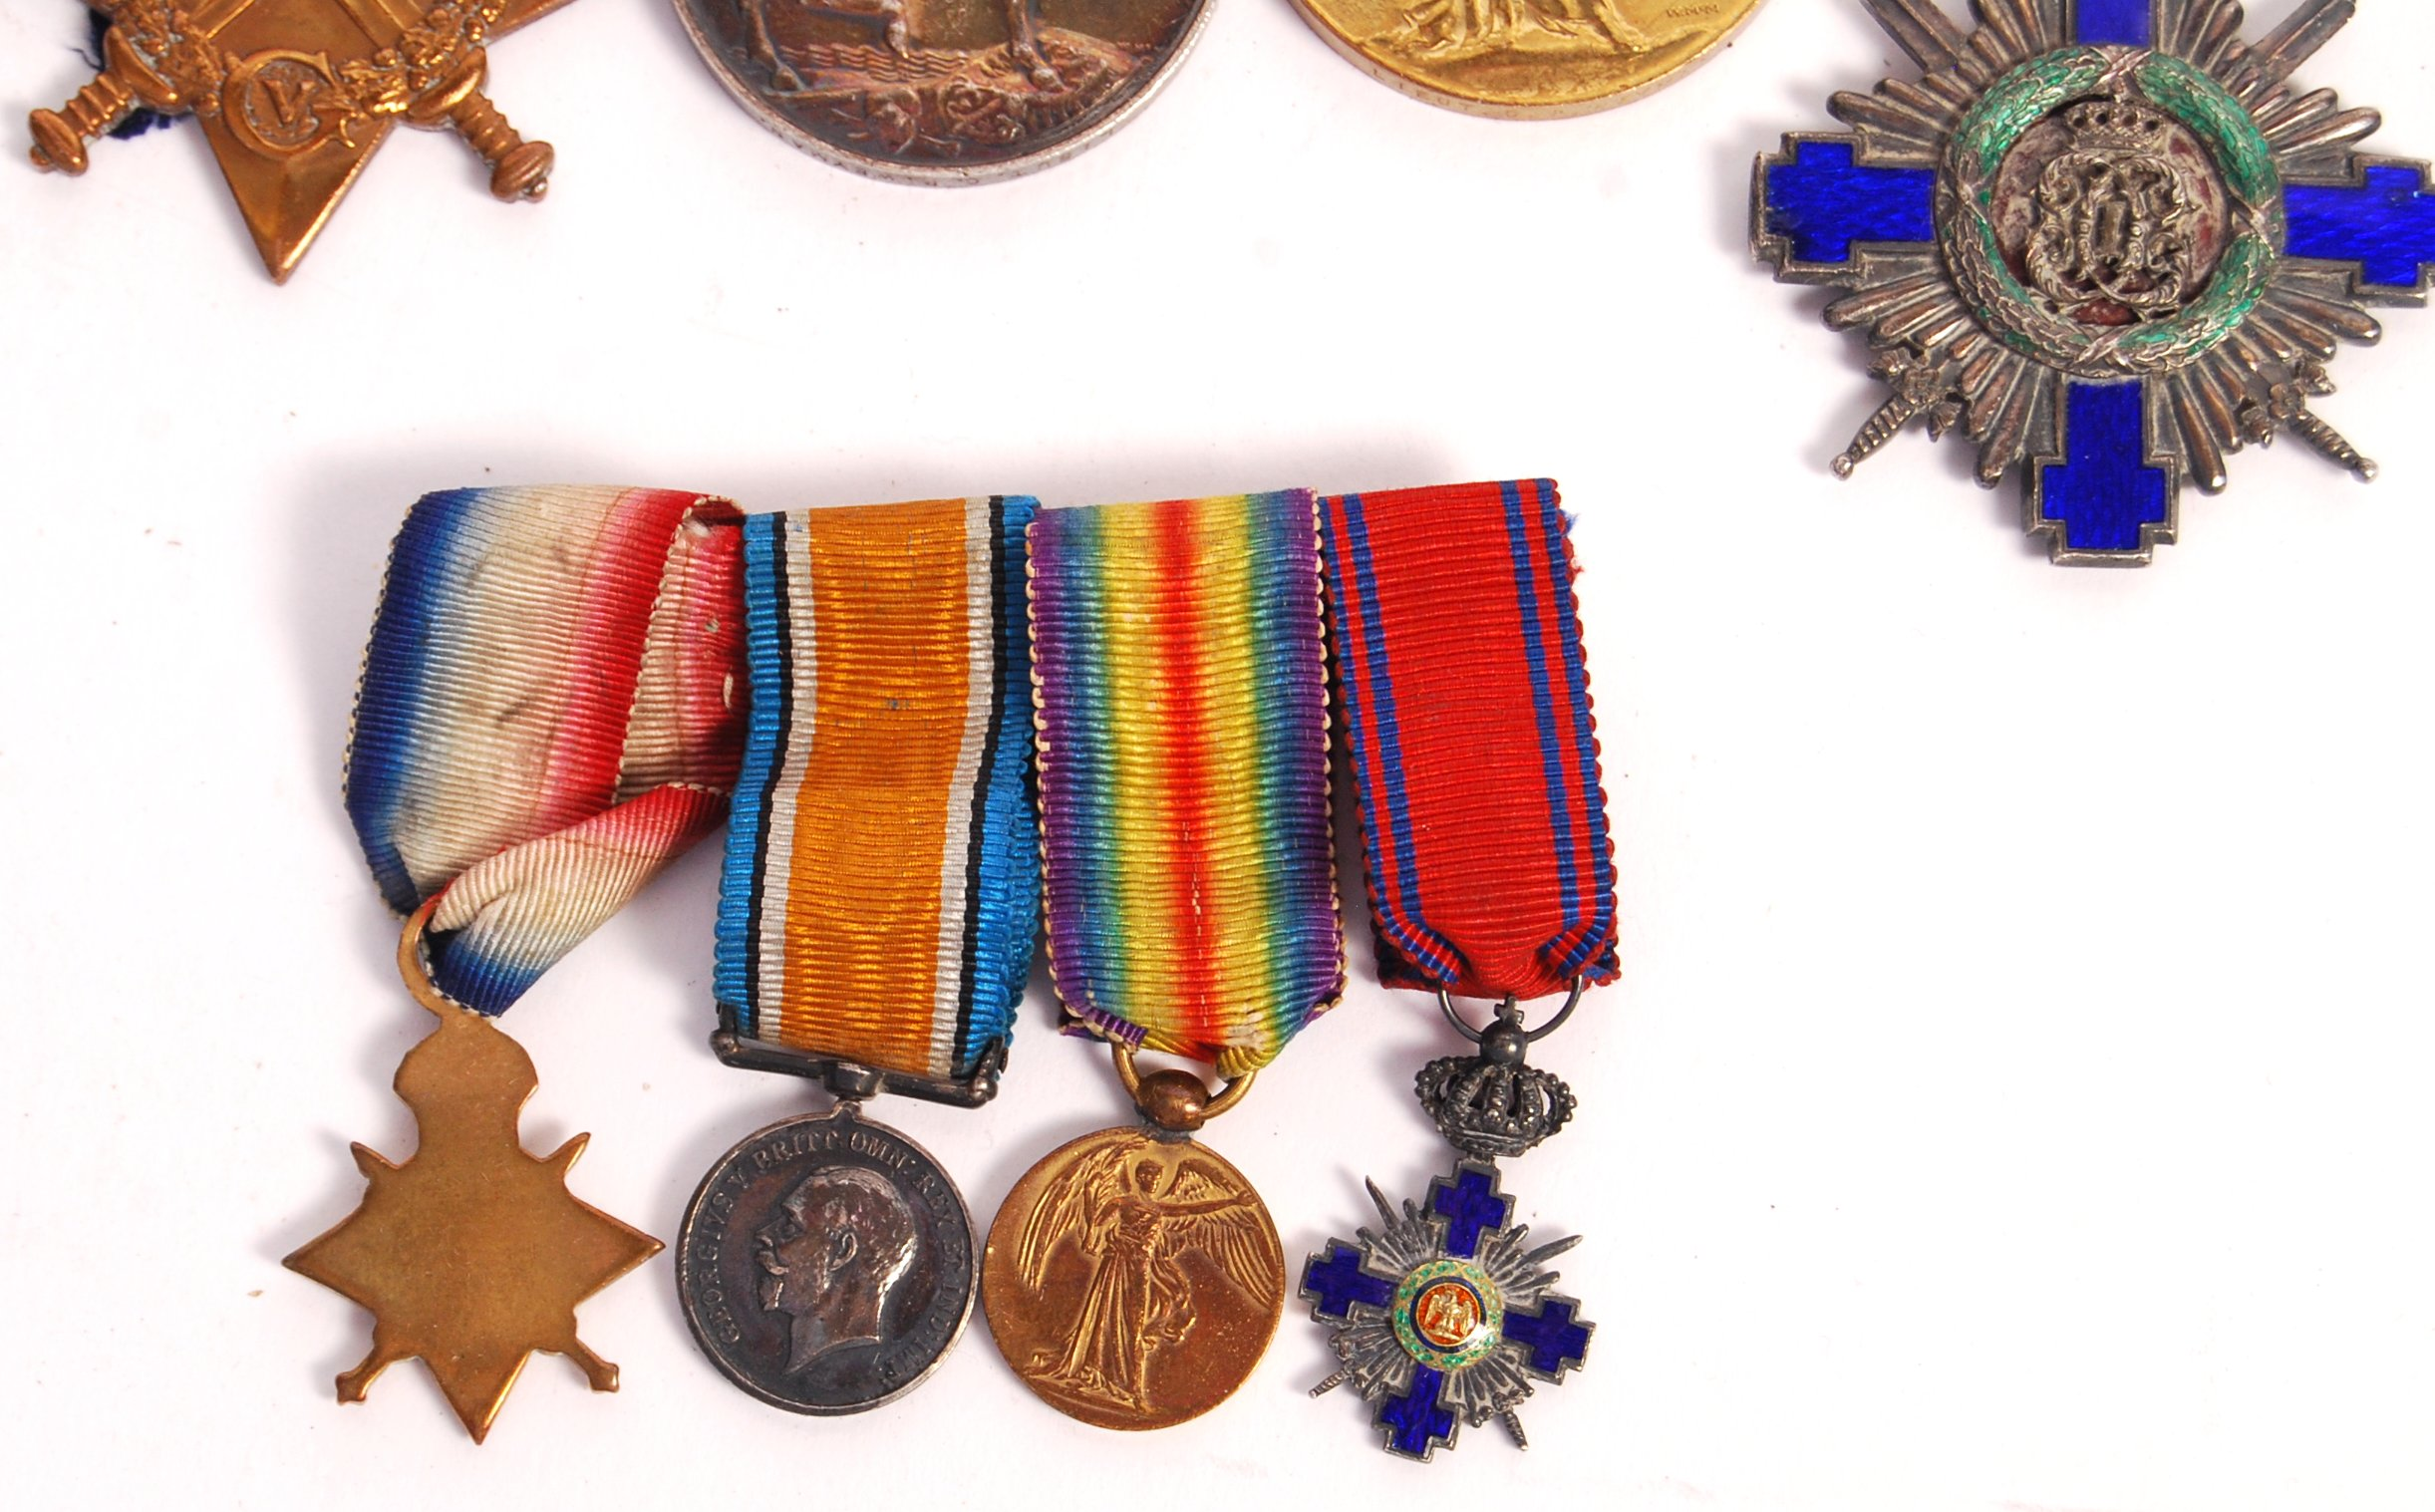 WWI FIRST WORLD WAR MEDAL GROUP - ORDER OF THE STAR OF ROMANIA - Image 3 of 8